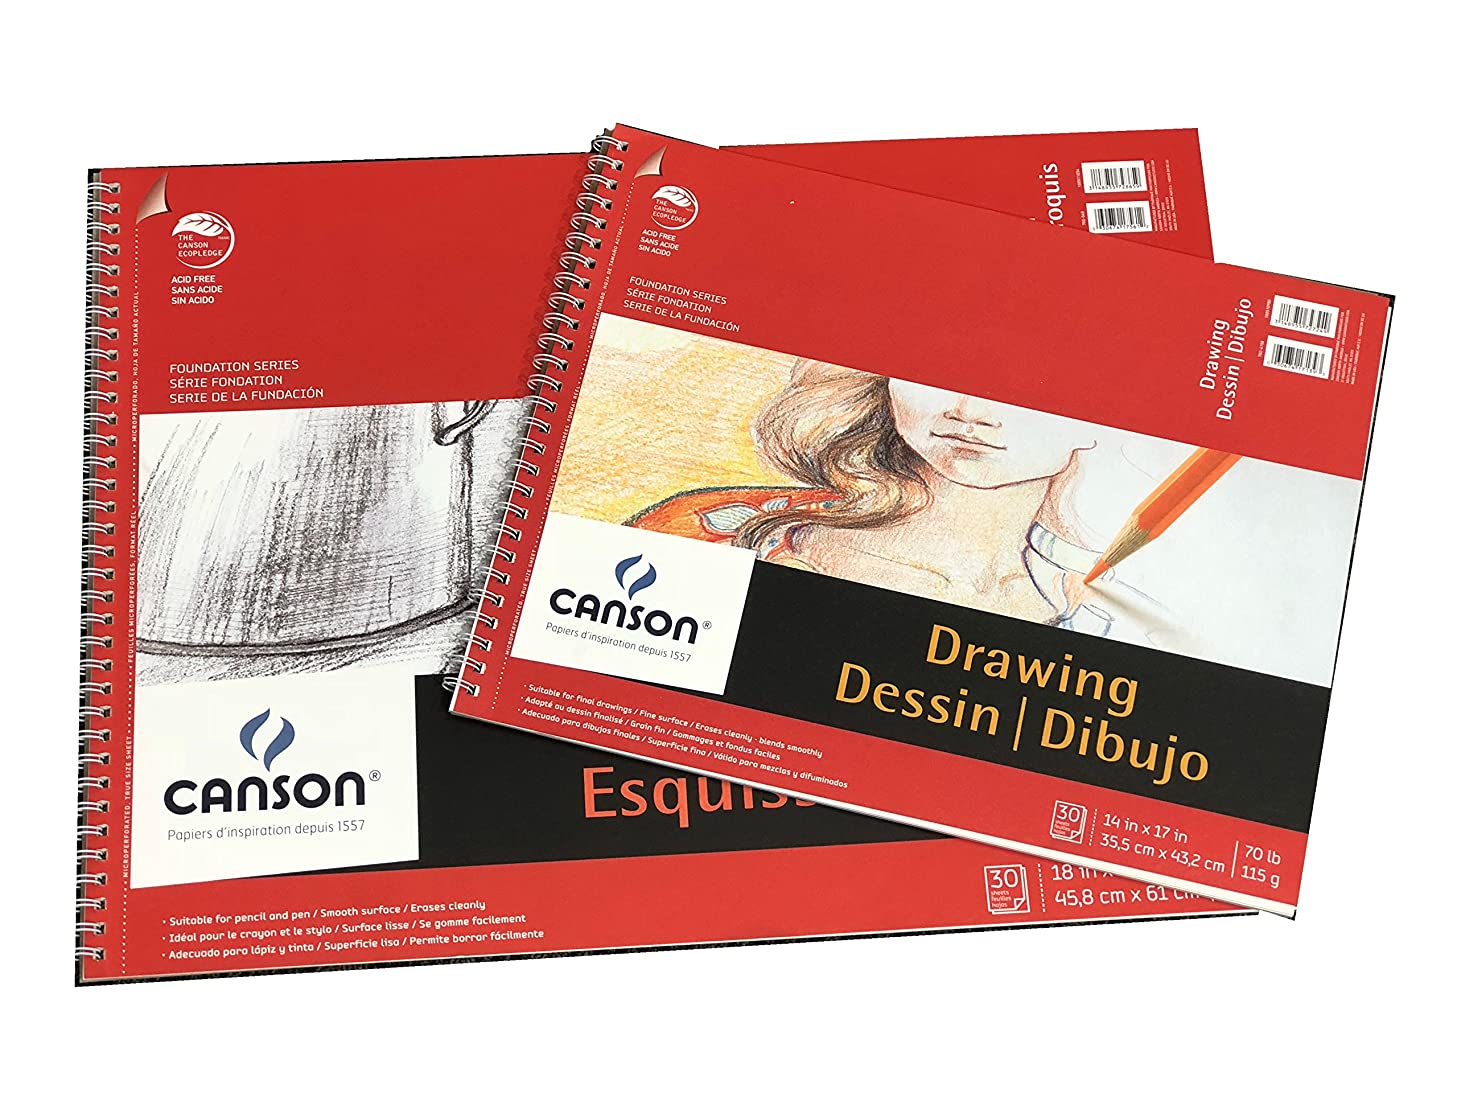 Canson Foundation Series Drawing Paper 14 x 17 and Sketch Paper 18 x 24